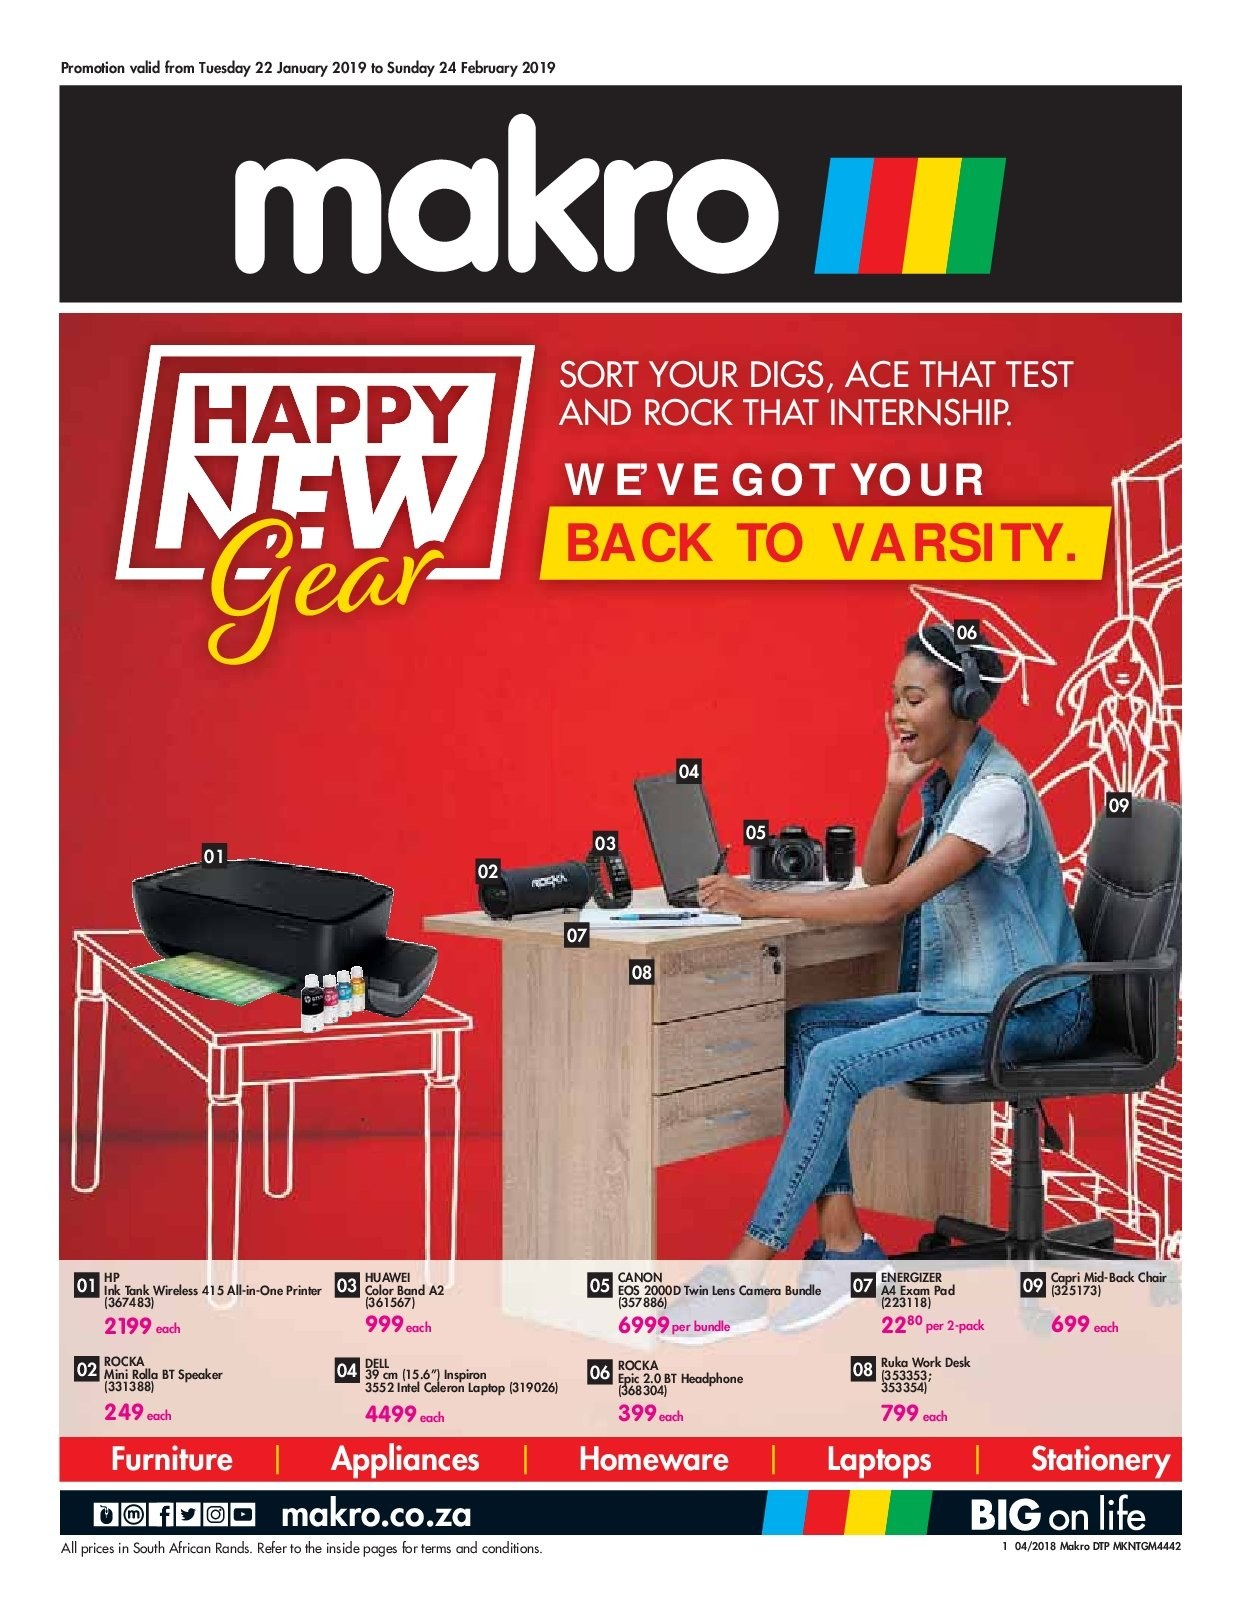 Makro special - 01.22.2019 - 02.24.2019 - Sales products - all-in-one printer, band, desk, energizer, furniture, laptop, lens, speaker, hp, huawei, chair, intel, printer, wireless, pad. Page 1.